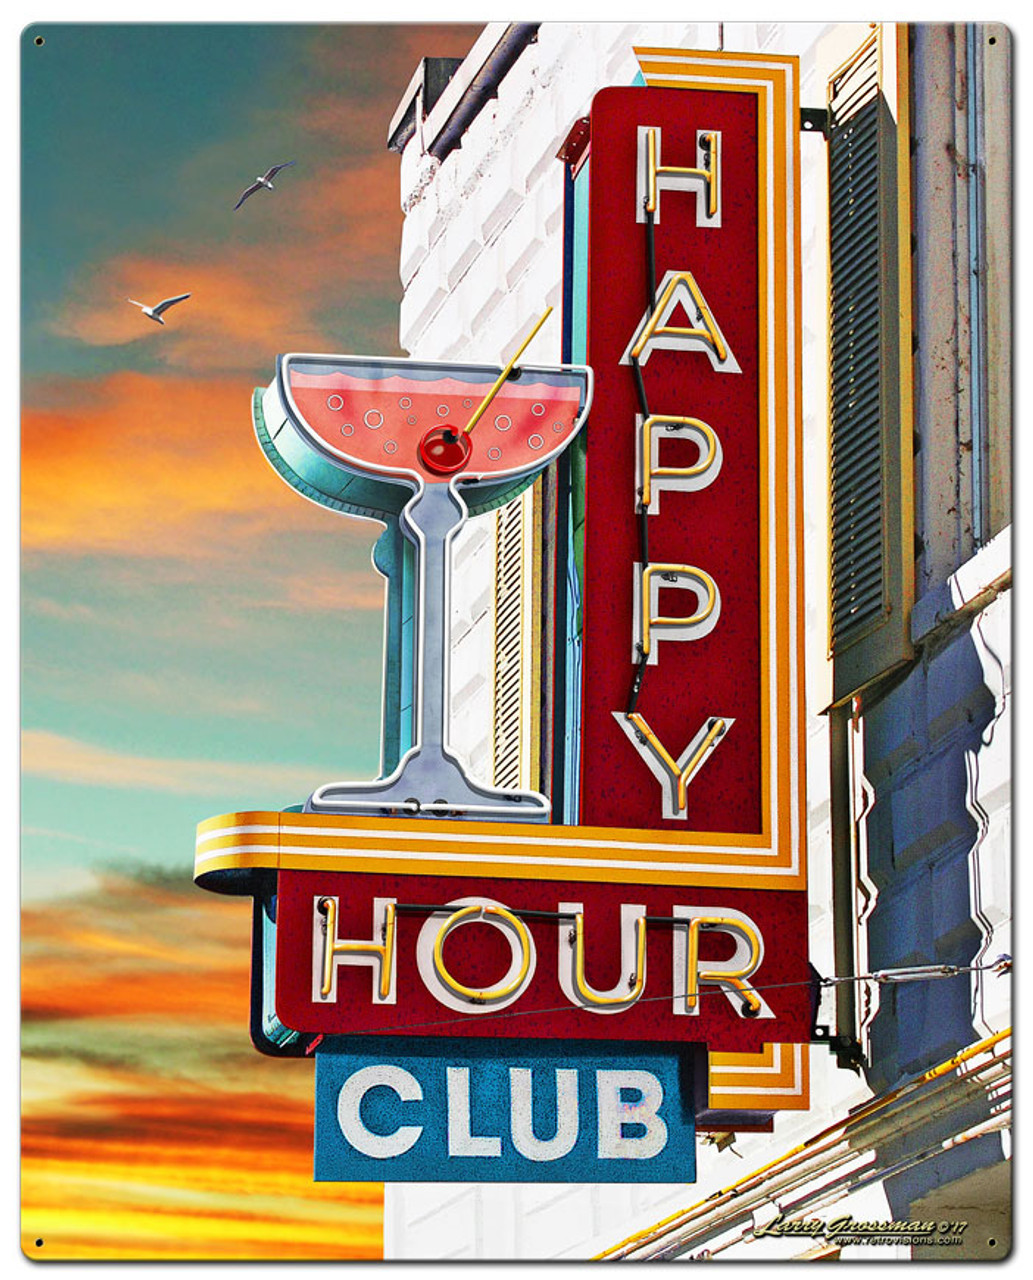 Happy Hour Club Metal Sign 24 x 30 Inches